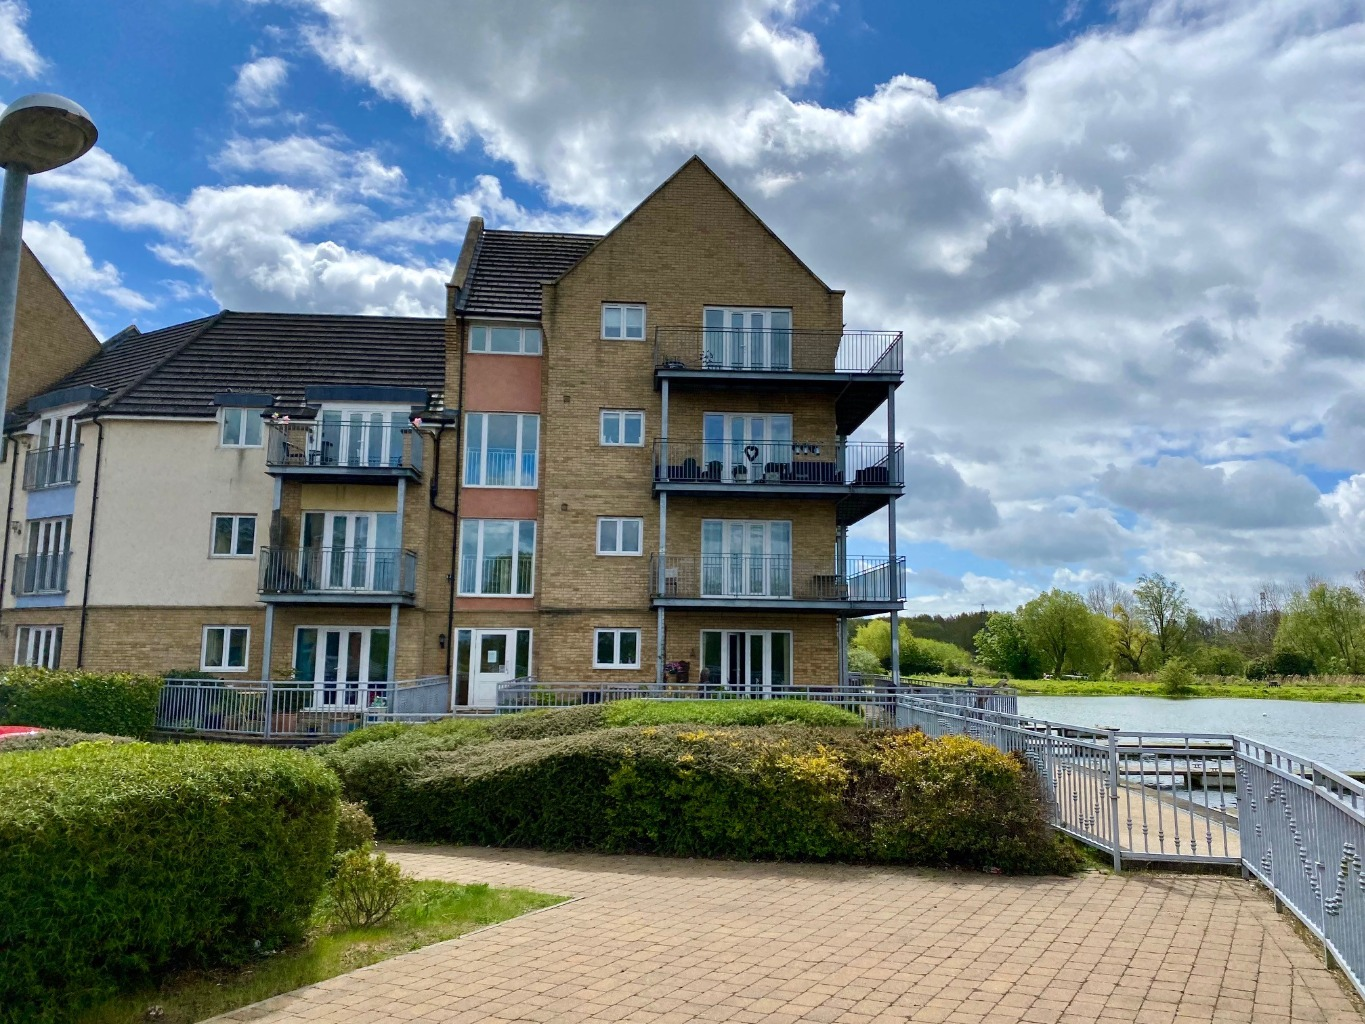 2 bed apartment for sale in Wren Walk, St. Neots, PE19